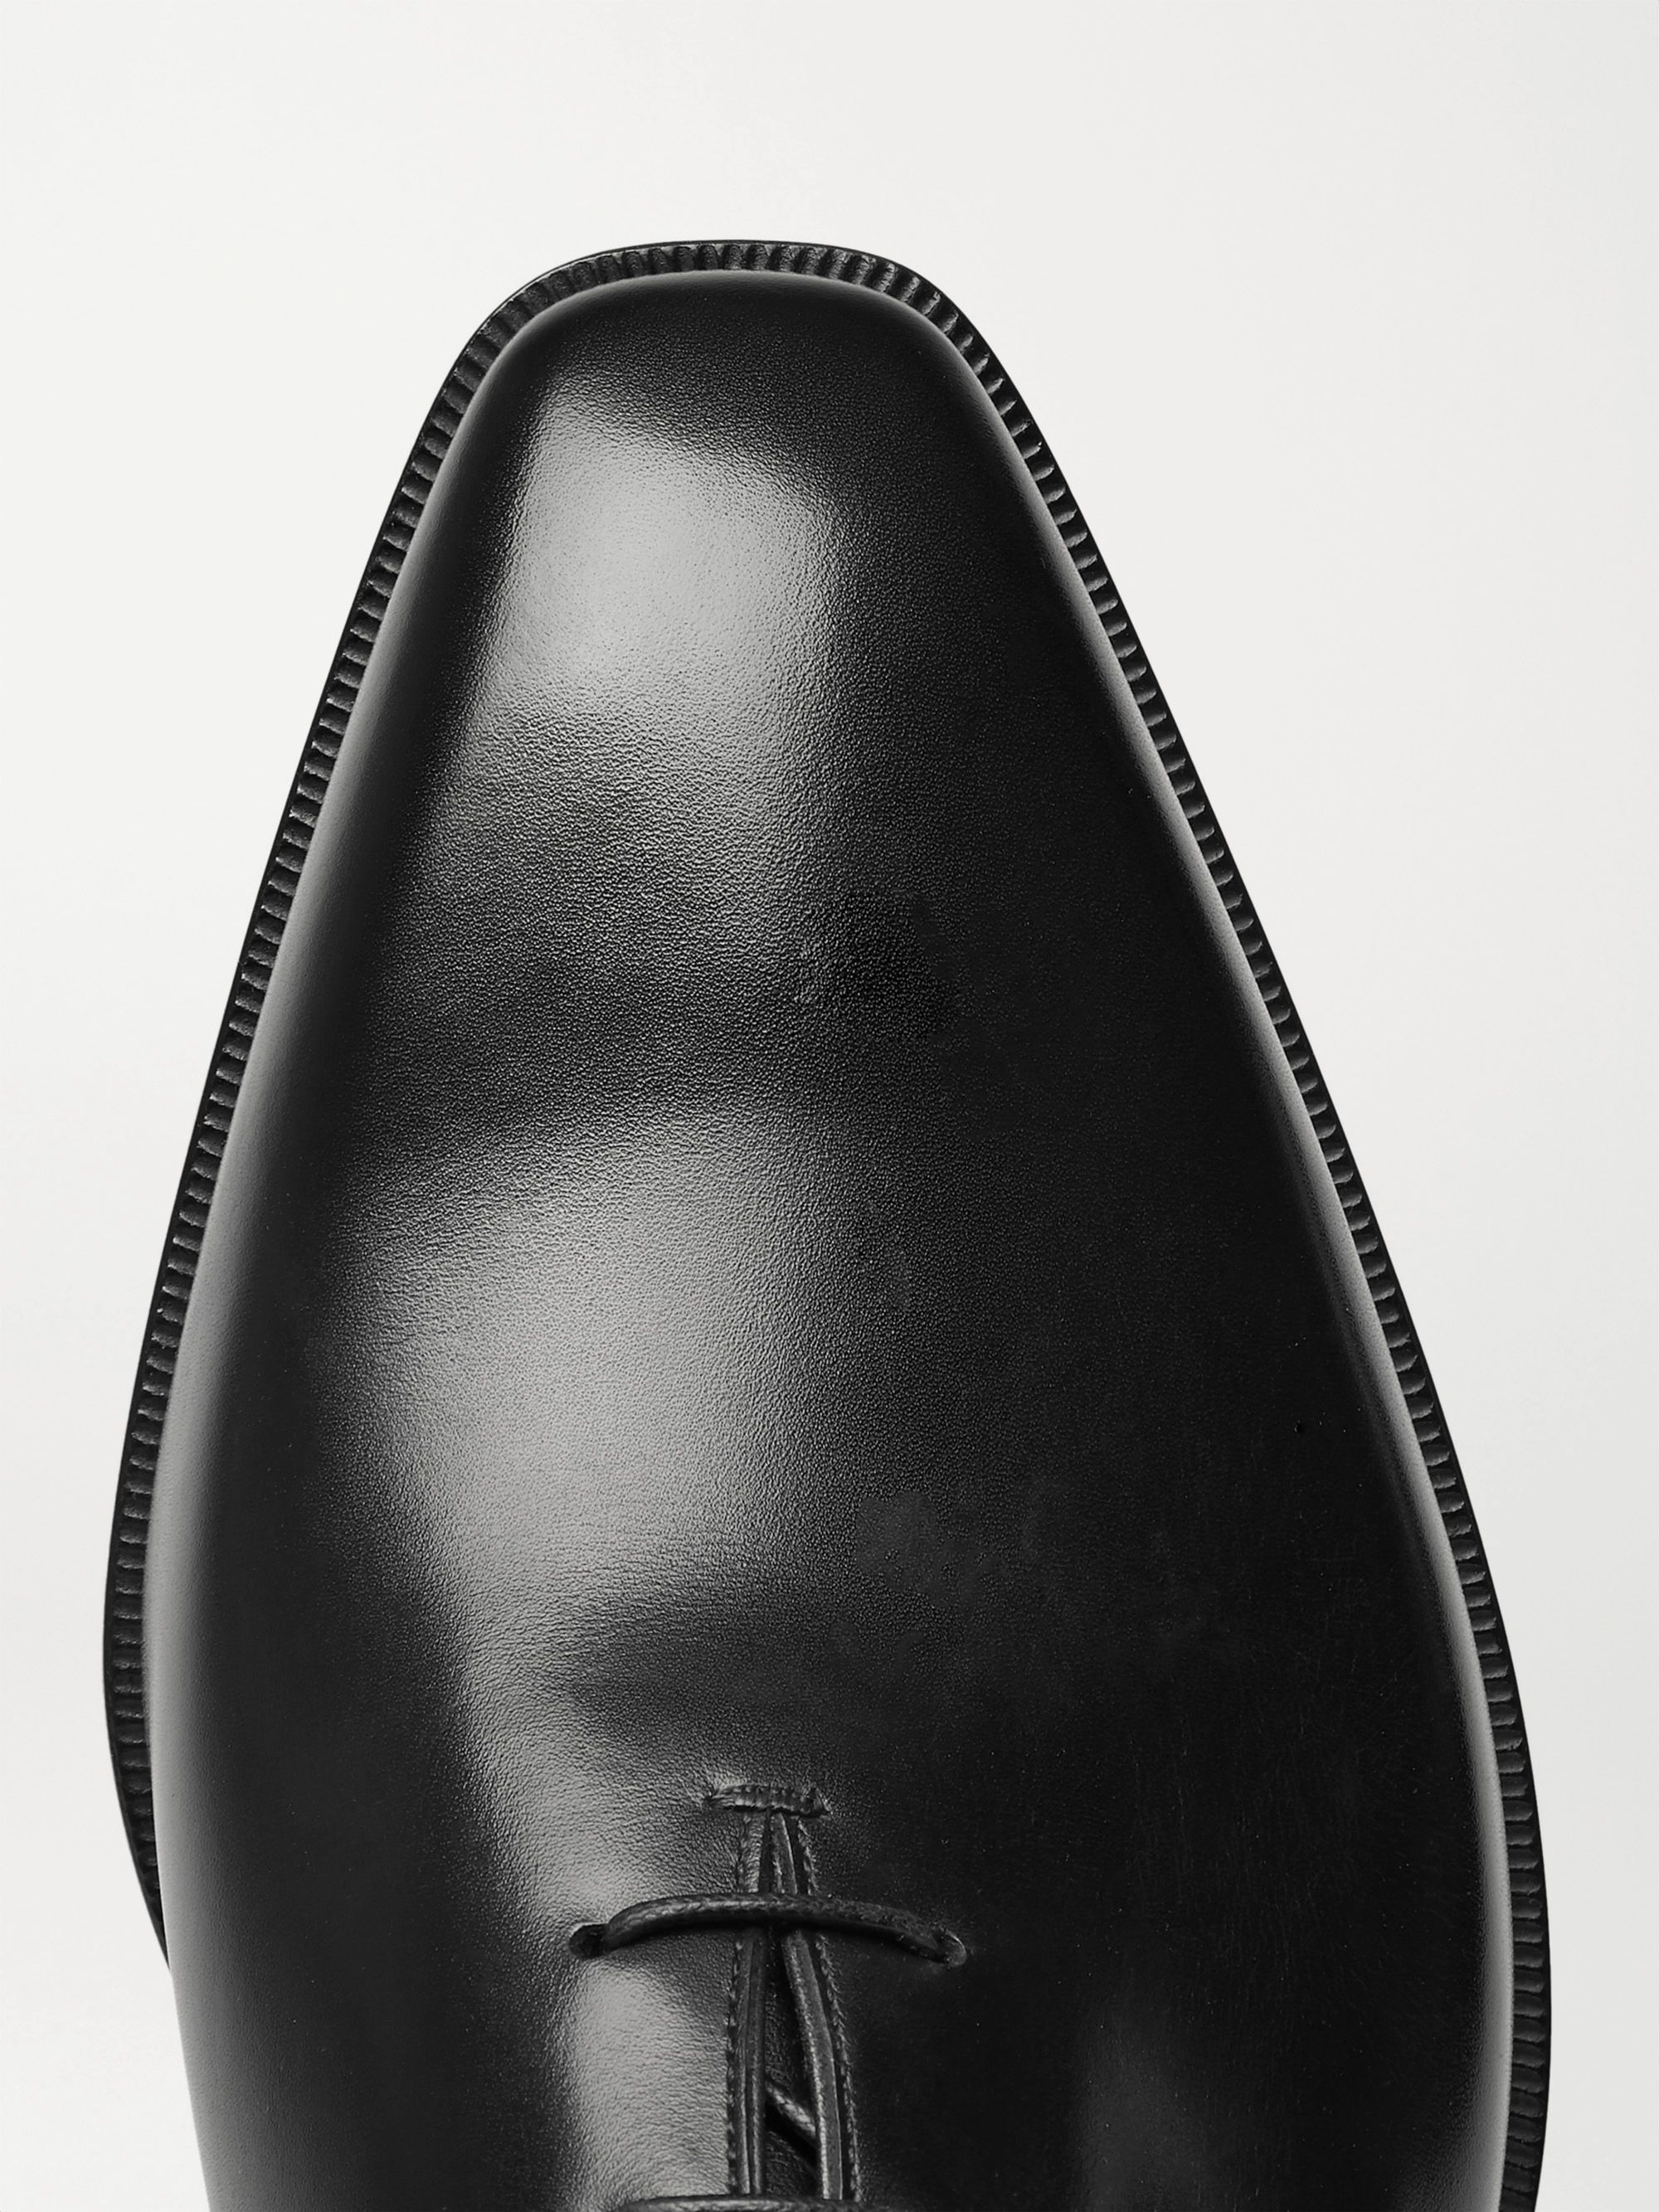 Berluti Alessandro Démesure Whole-Cut Leather Oxford Shoes